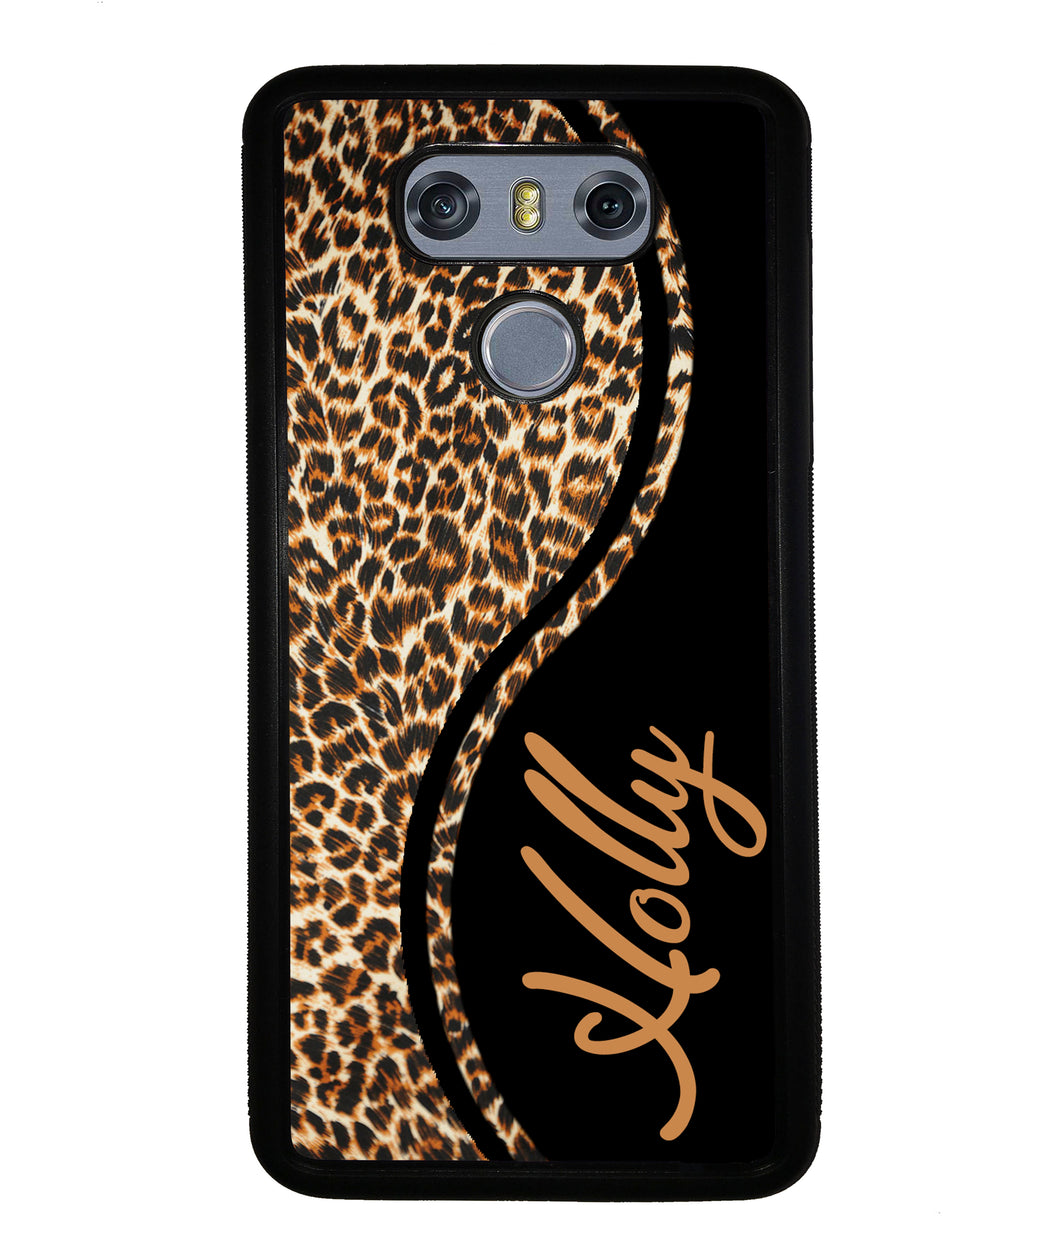 Leopard Curvy Personalized | LG Phone Case